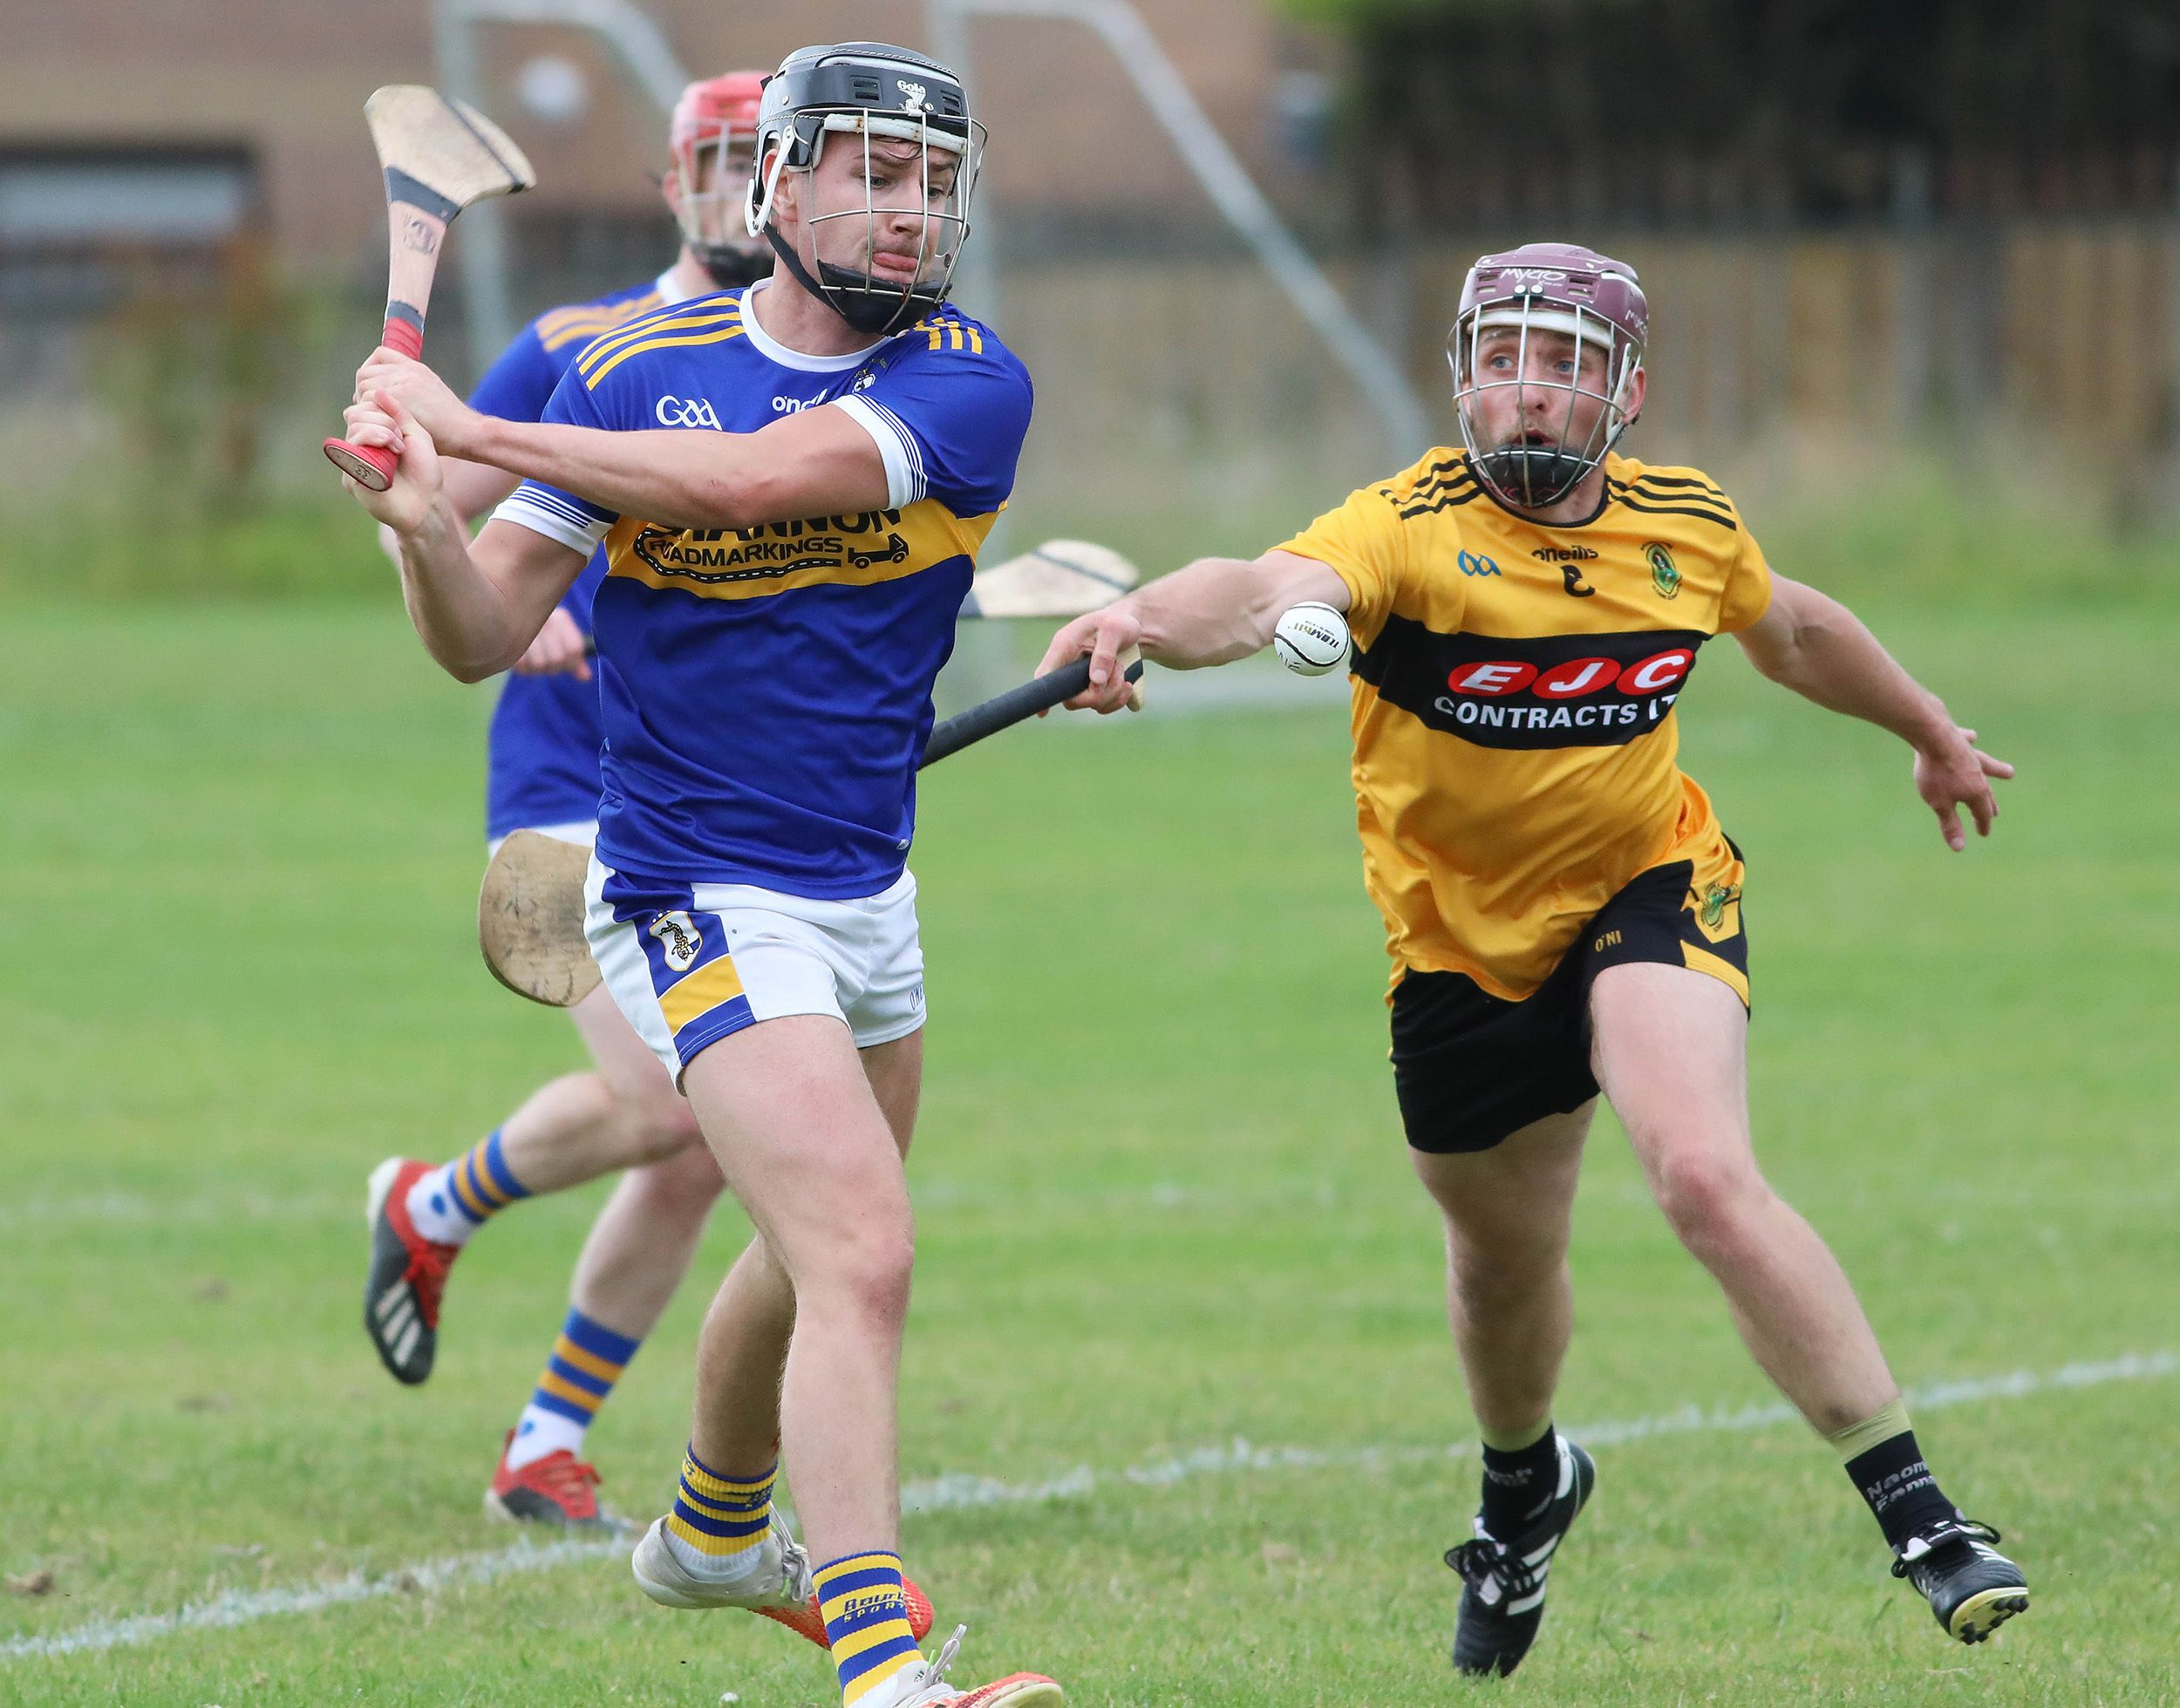 Rossa\'s Dominic McEnhill gets his pass away despite the close attention of Naomh Éanna defender Matthew Donaghy